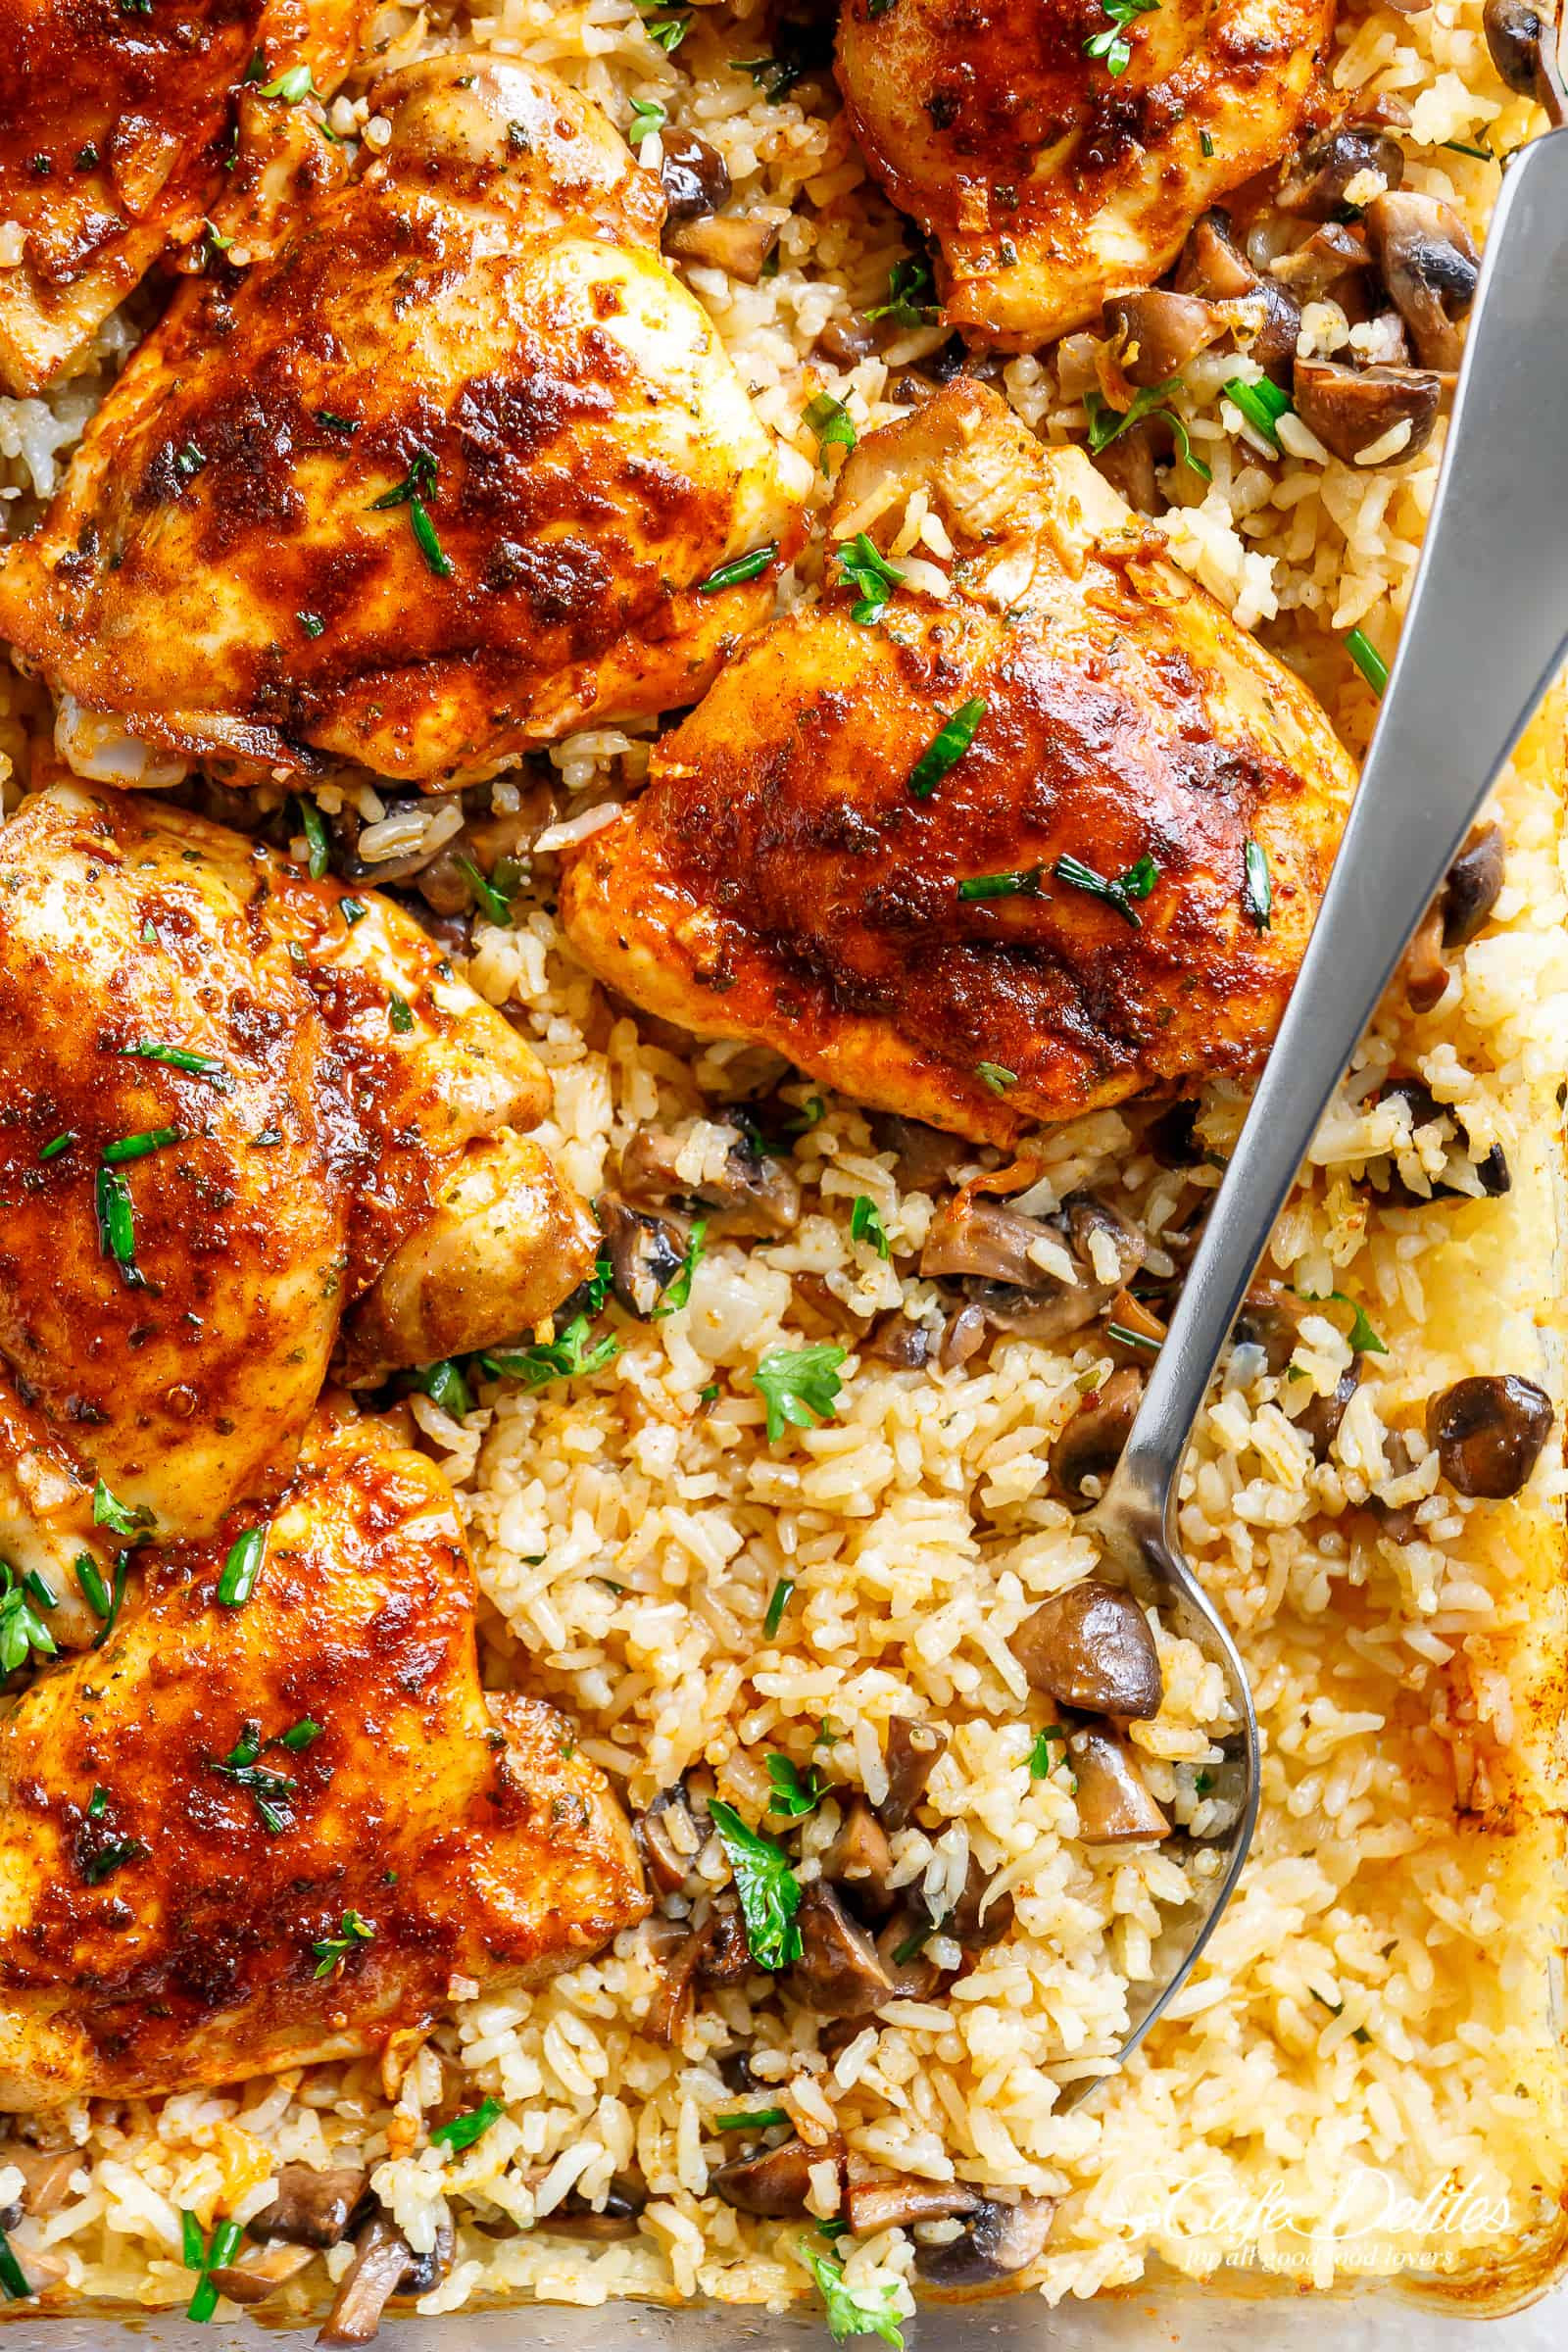 Baked Chicken And Rice Recipes  Oven Baked Chicken And Rice Cafe Delites